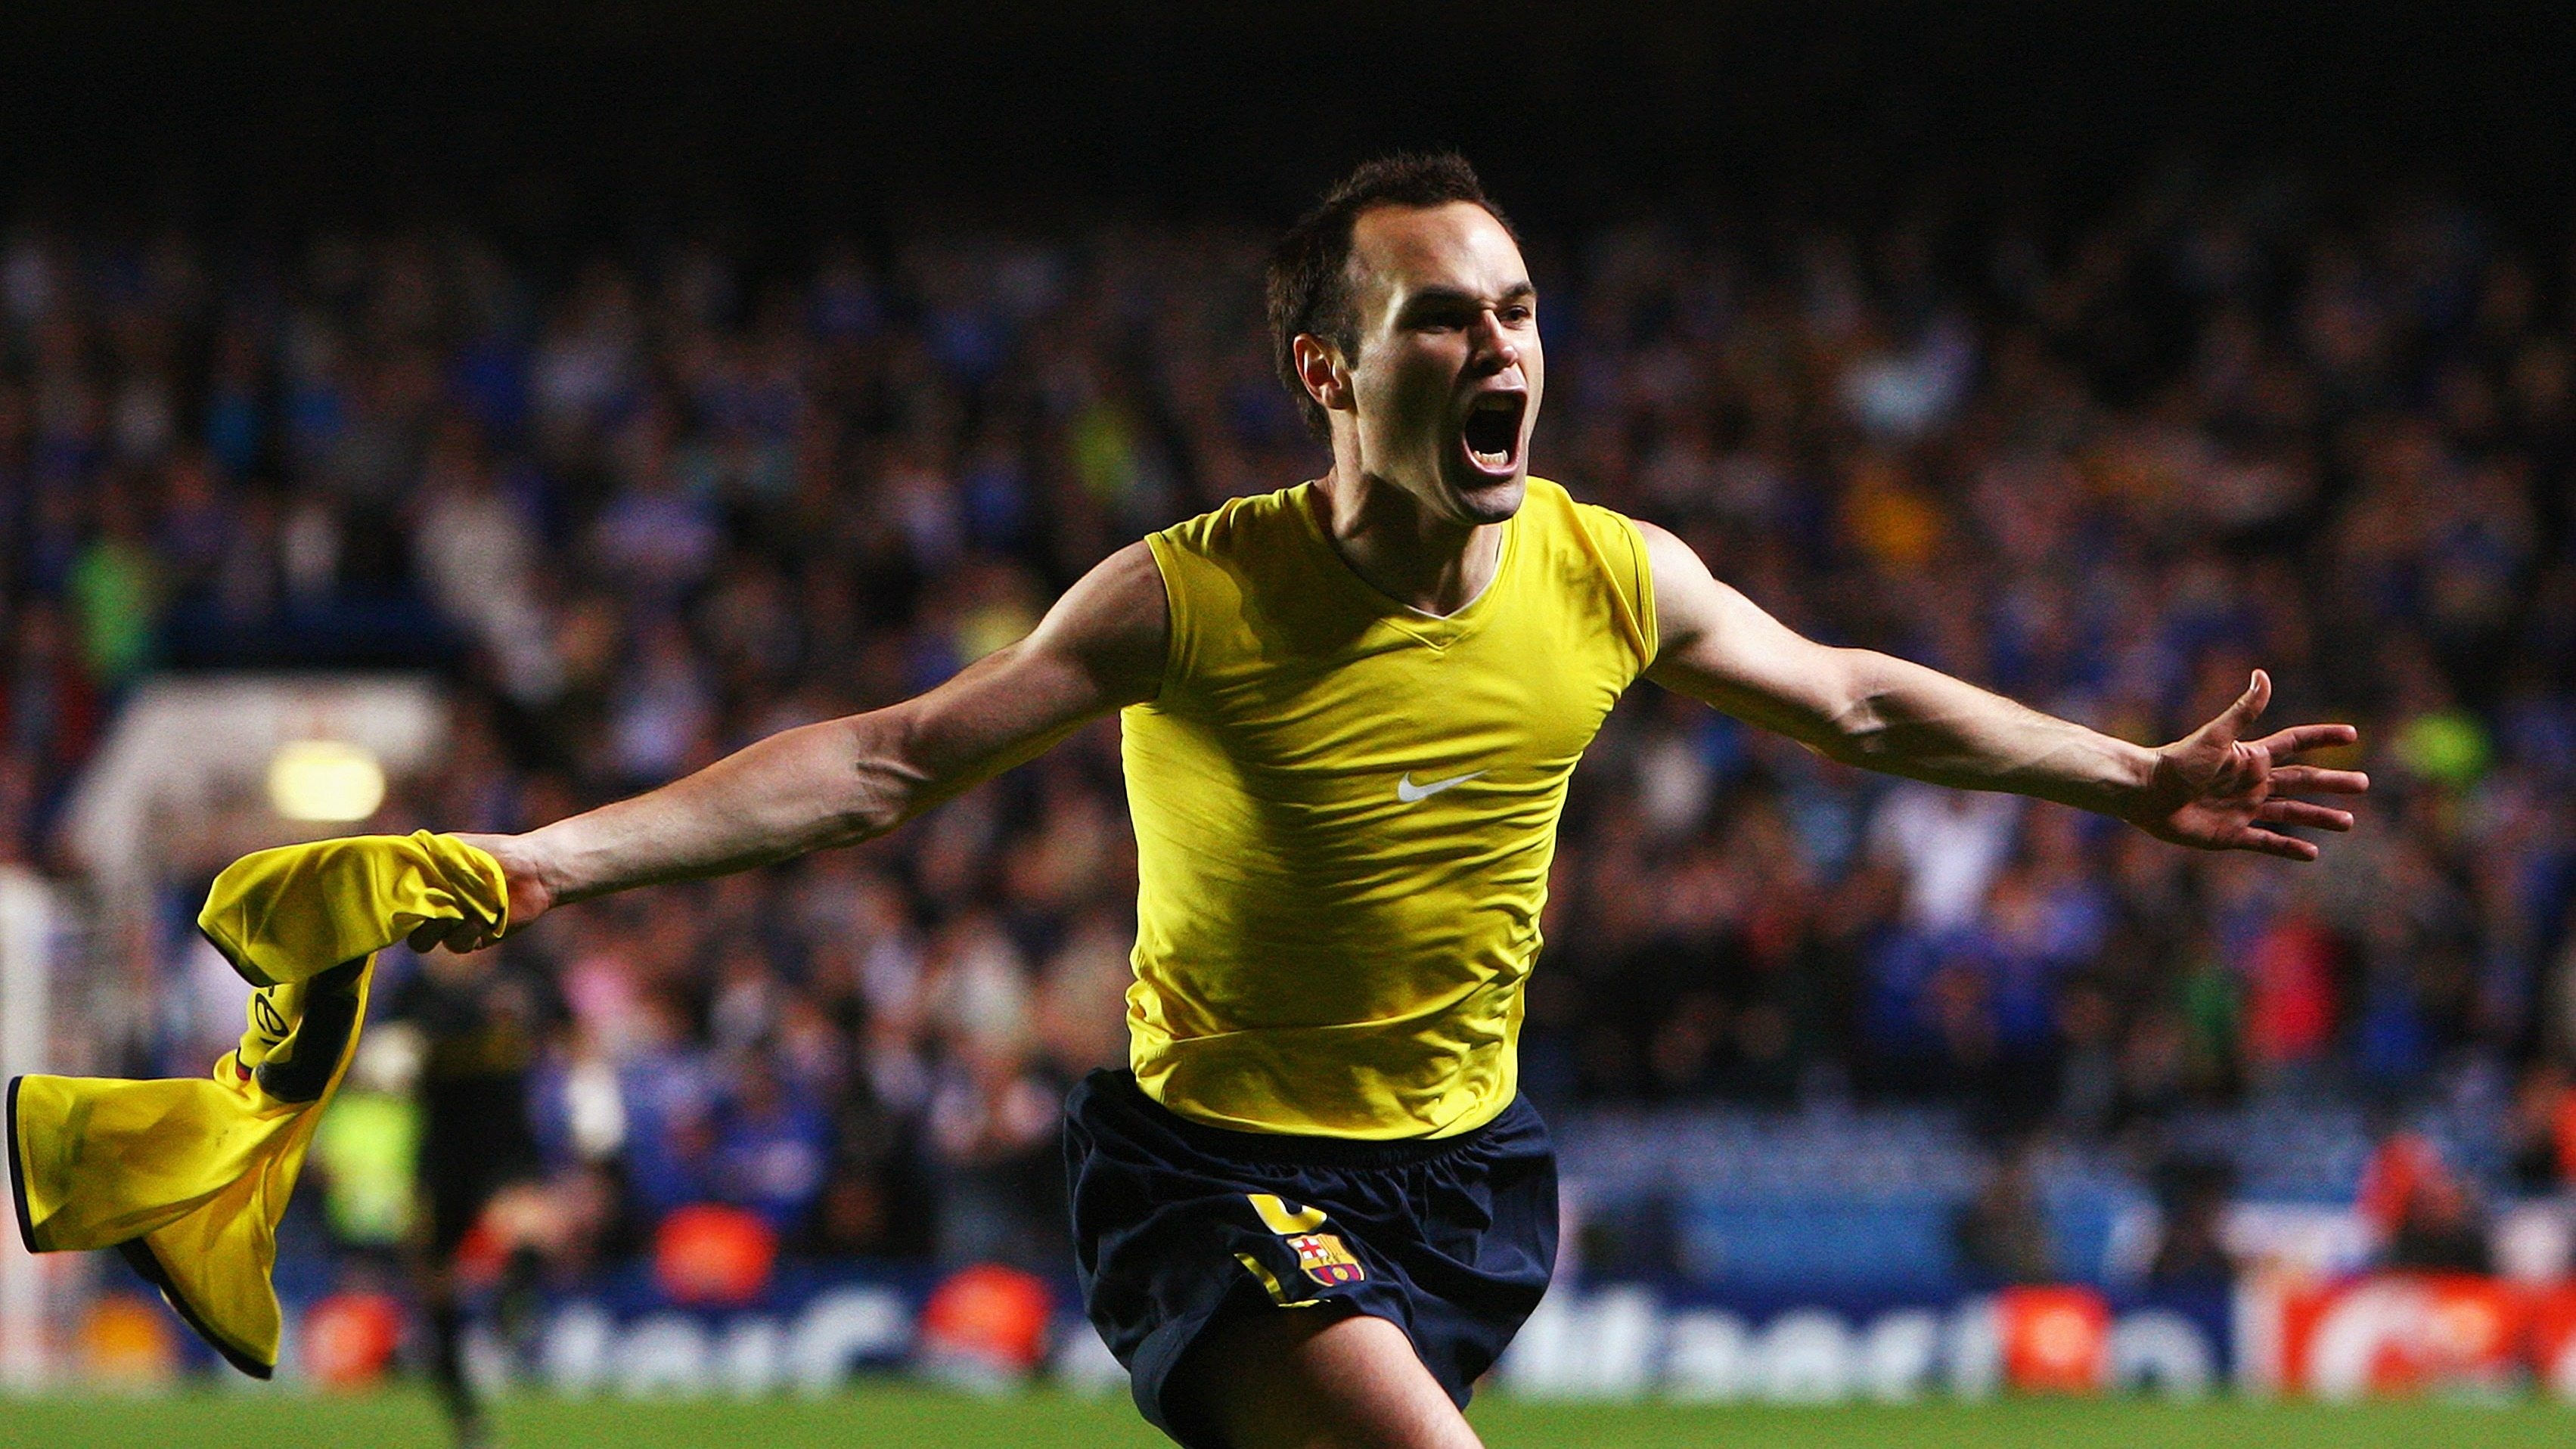 Relive the Andrés Iniesta Champions League goal that broke Chelsea hearts